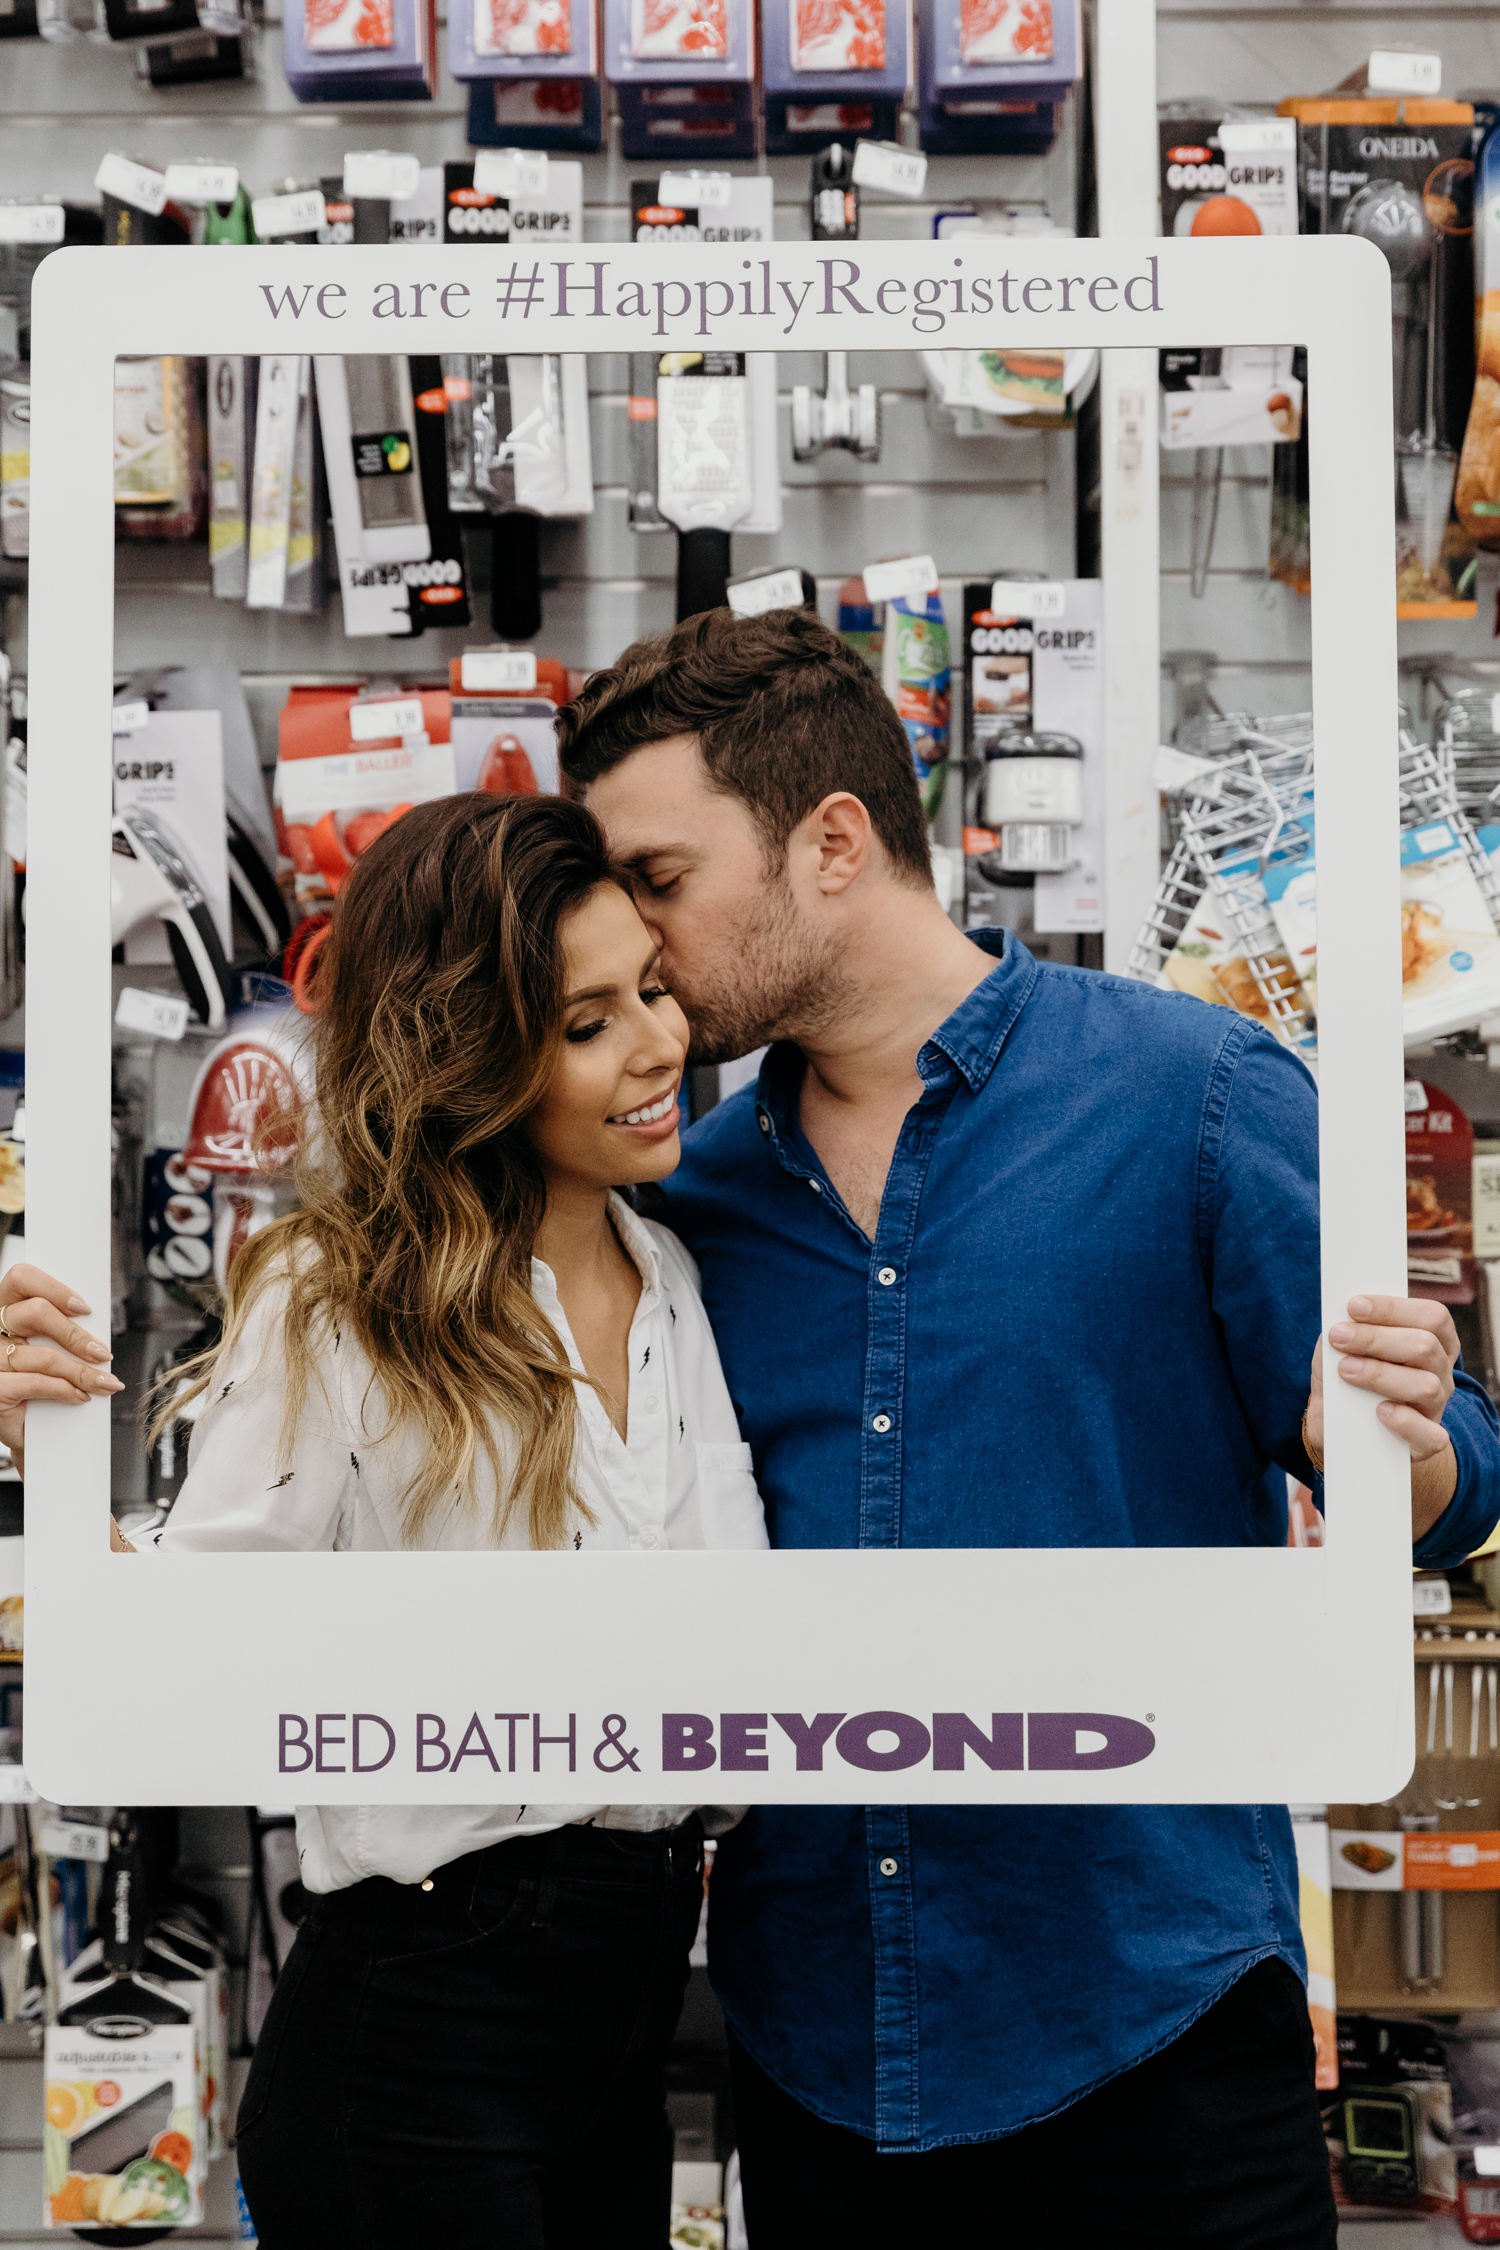 Happily Registered at Bed Bath + Beyond